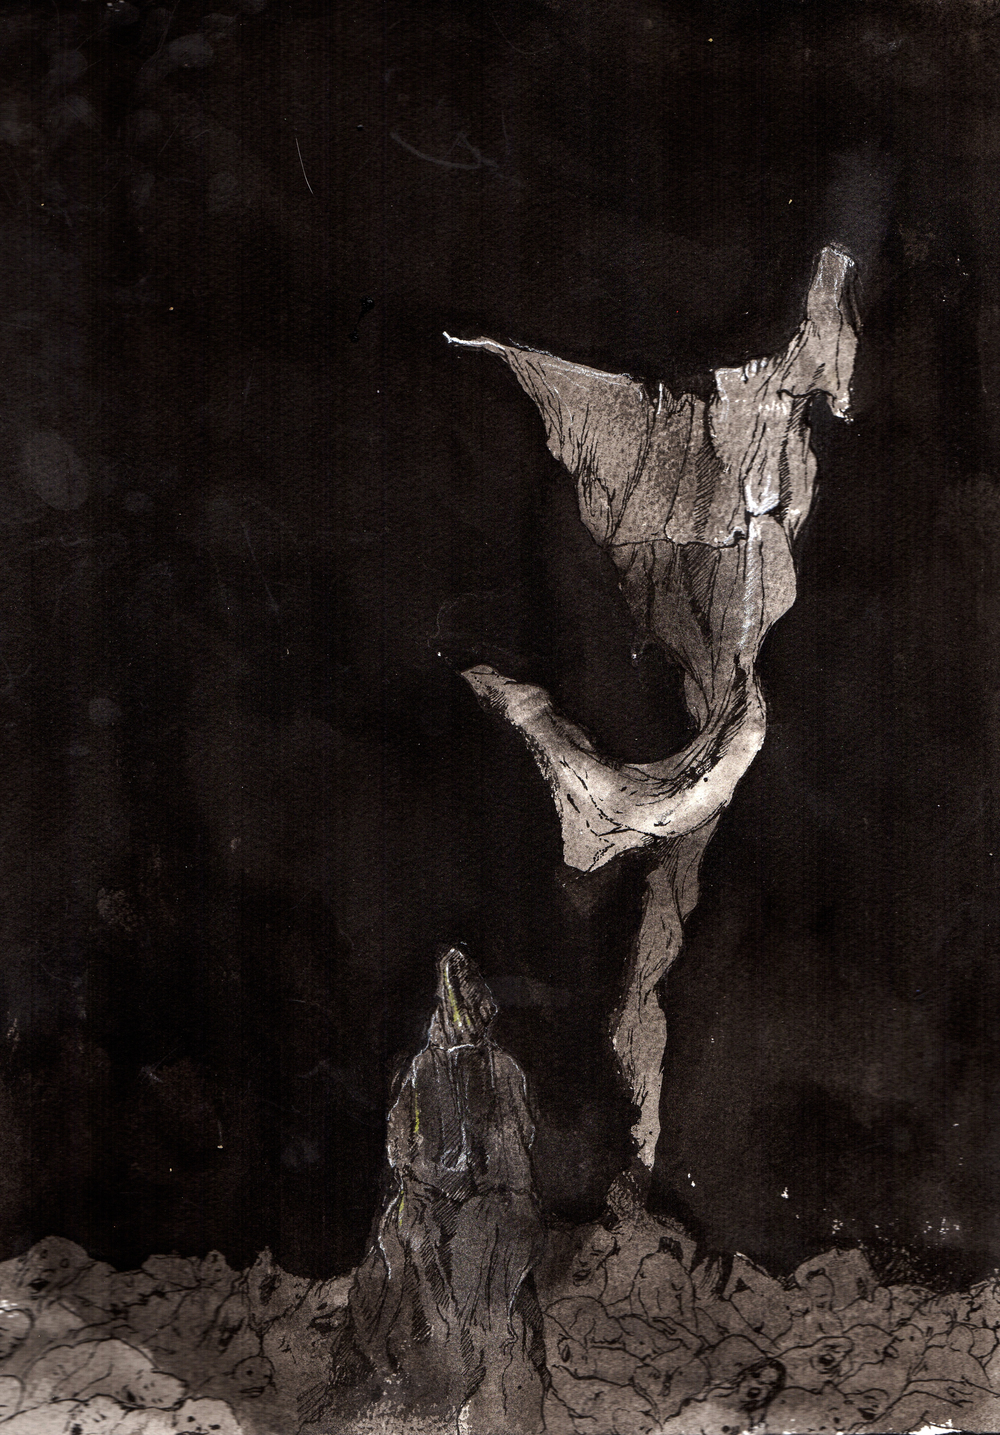 Every man is broken by the same holy curse  . 2013. 11 x 14 inches. Ink wash on paper.